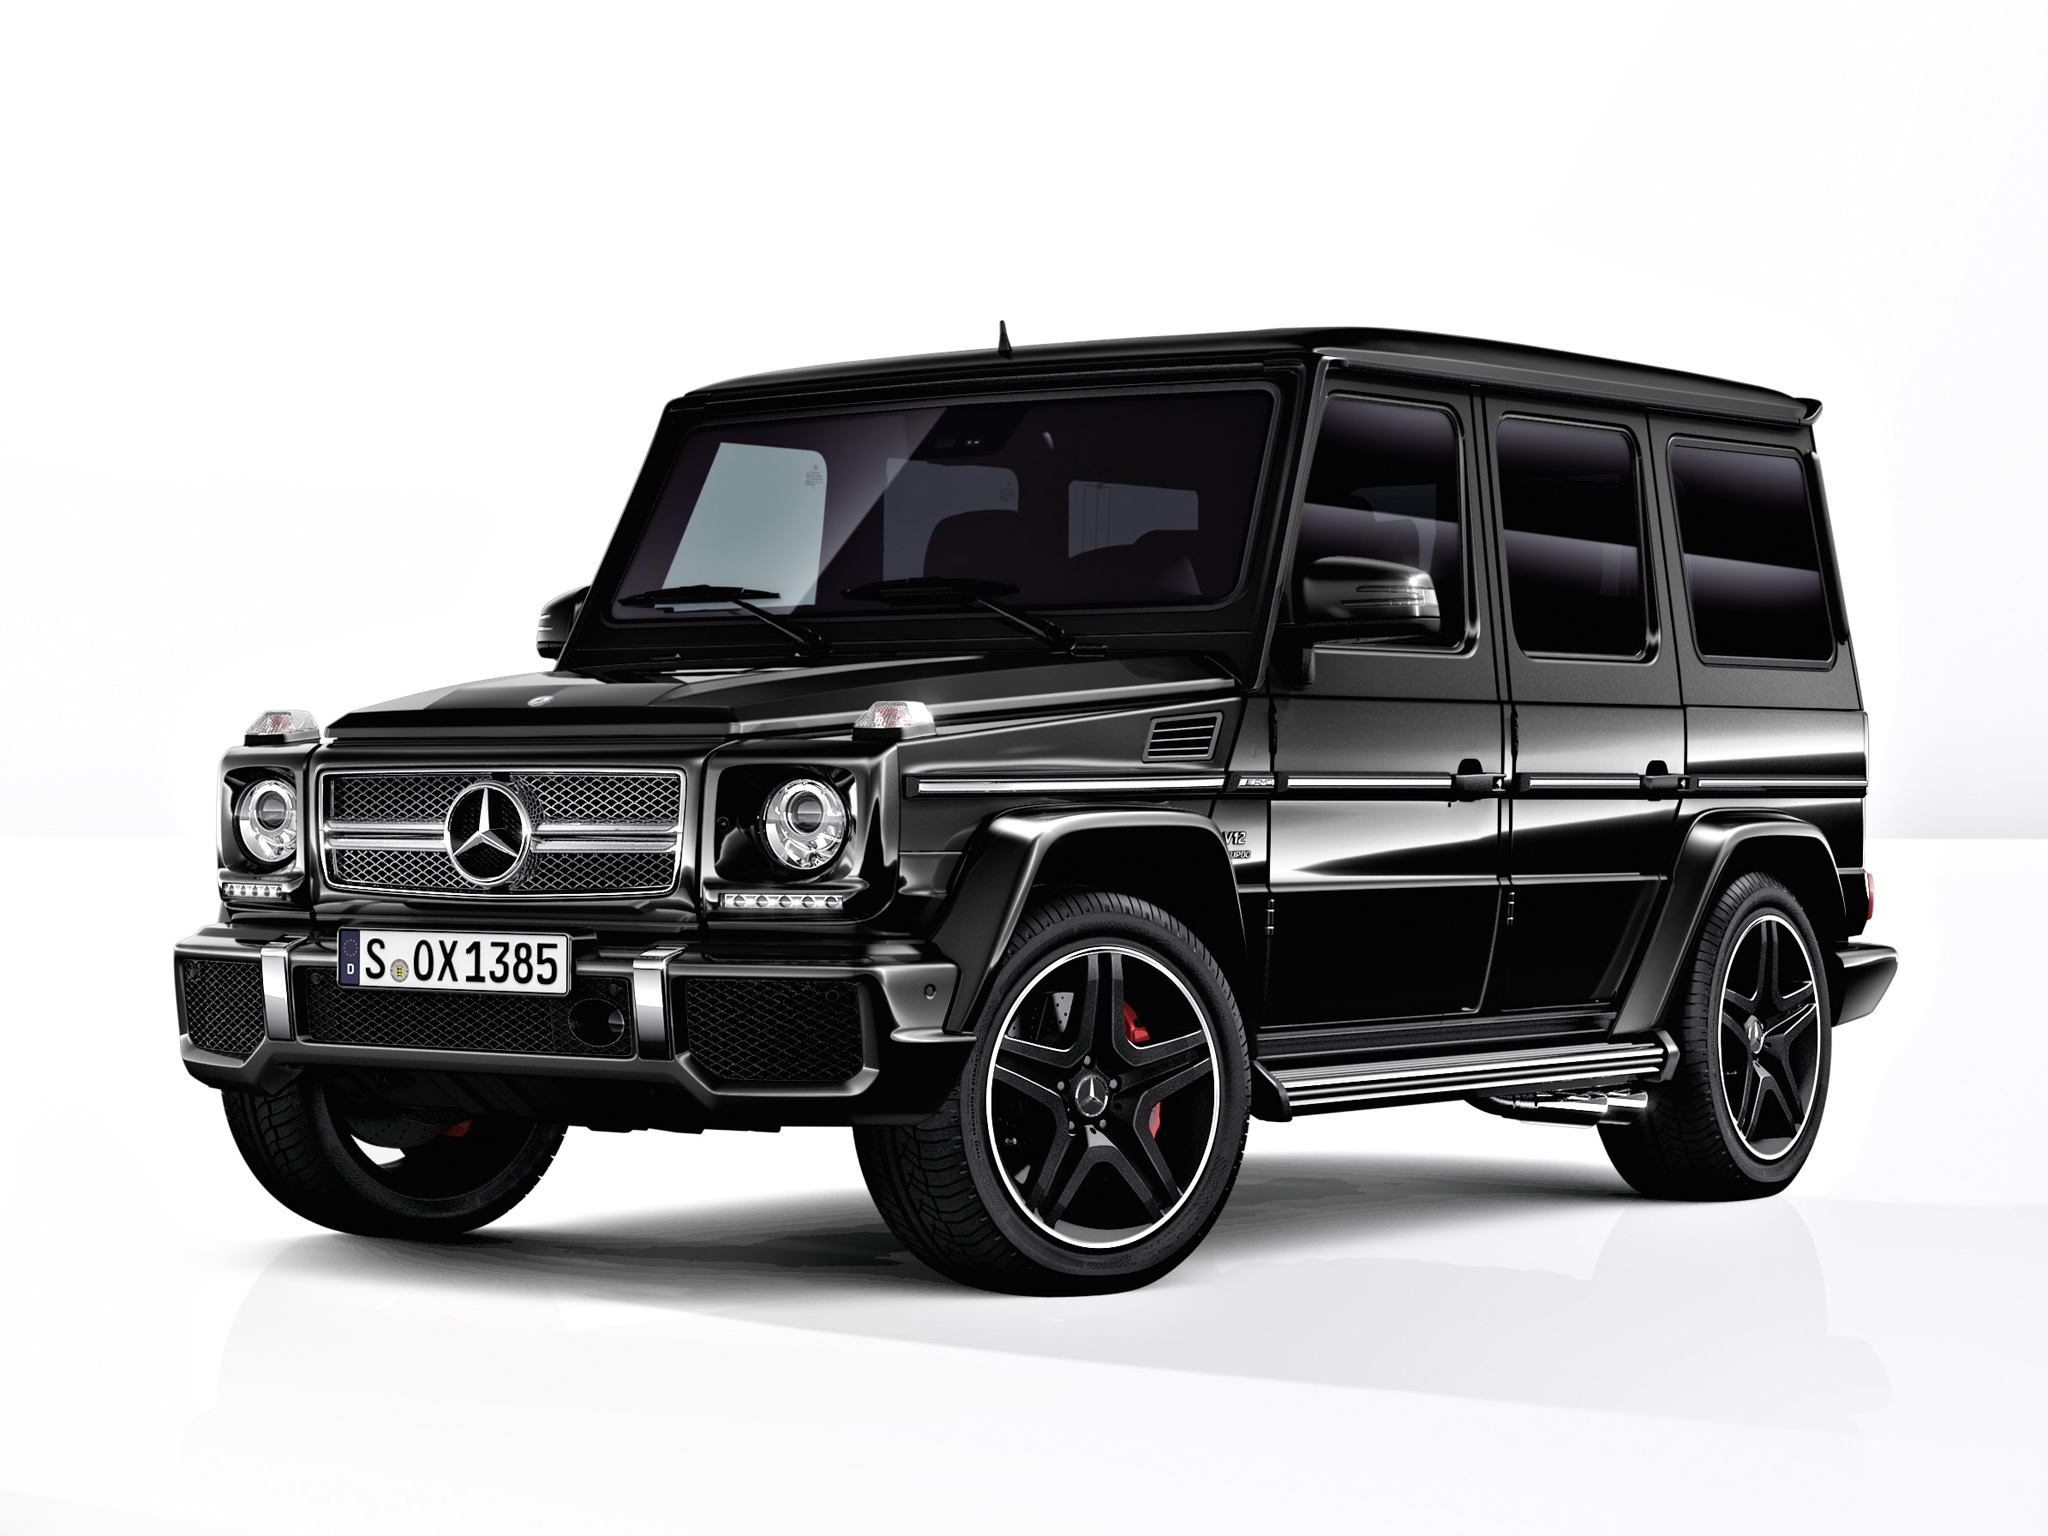 photo of mercedes benz g class amg 91981 image size 2048 x 1536. Black Bedroom Furniture Sets. Home Design Ideas